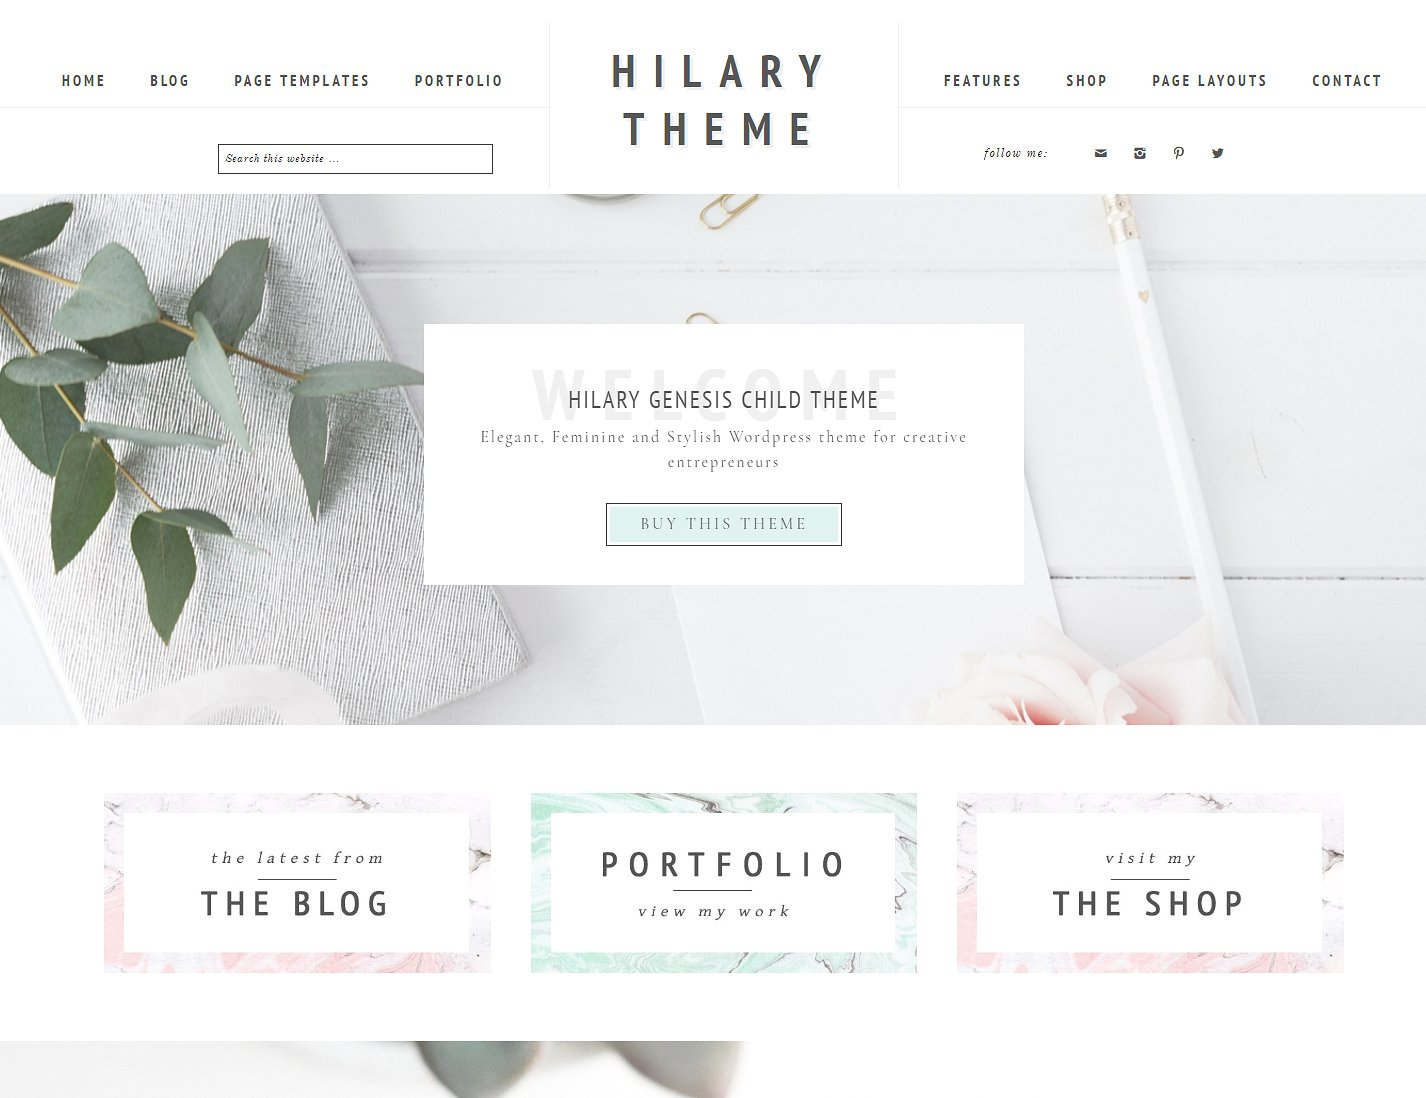 Best WordPress themes for eCommerce, hilary-ecommerce-and-portfolio-feminine-wordpress-genesis-child-theme-lovely-confetti-themes-